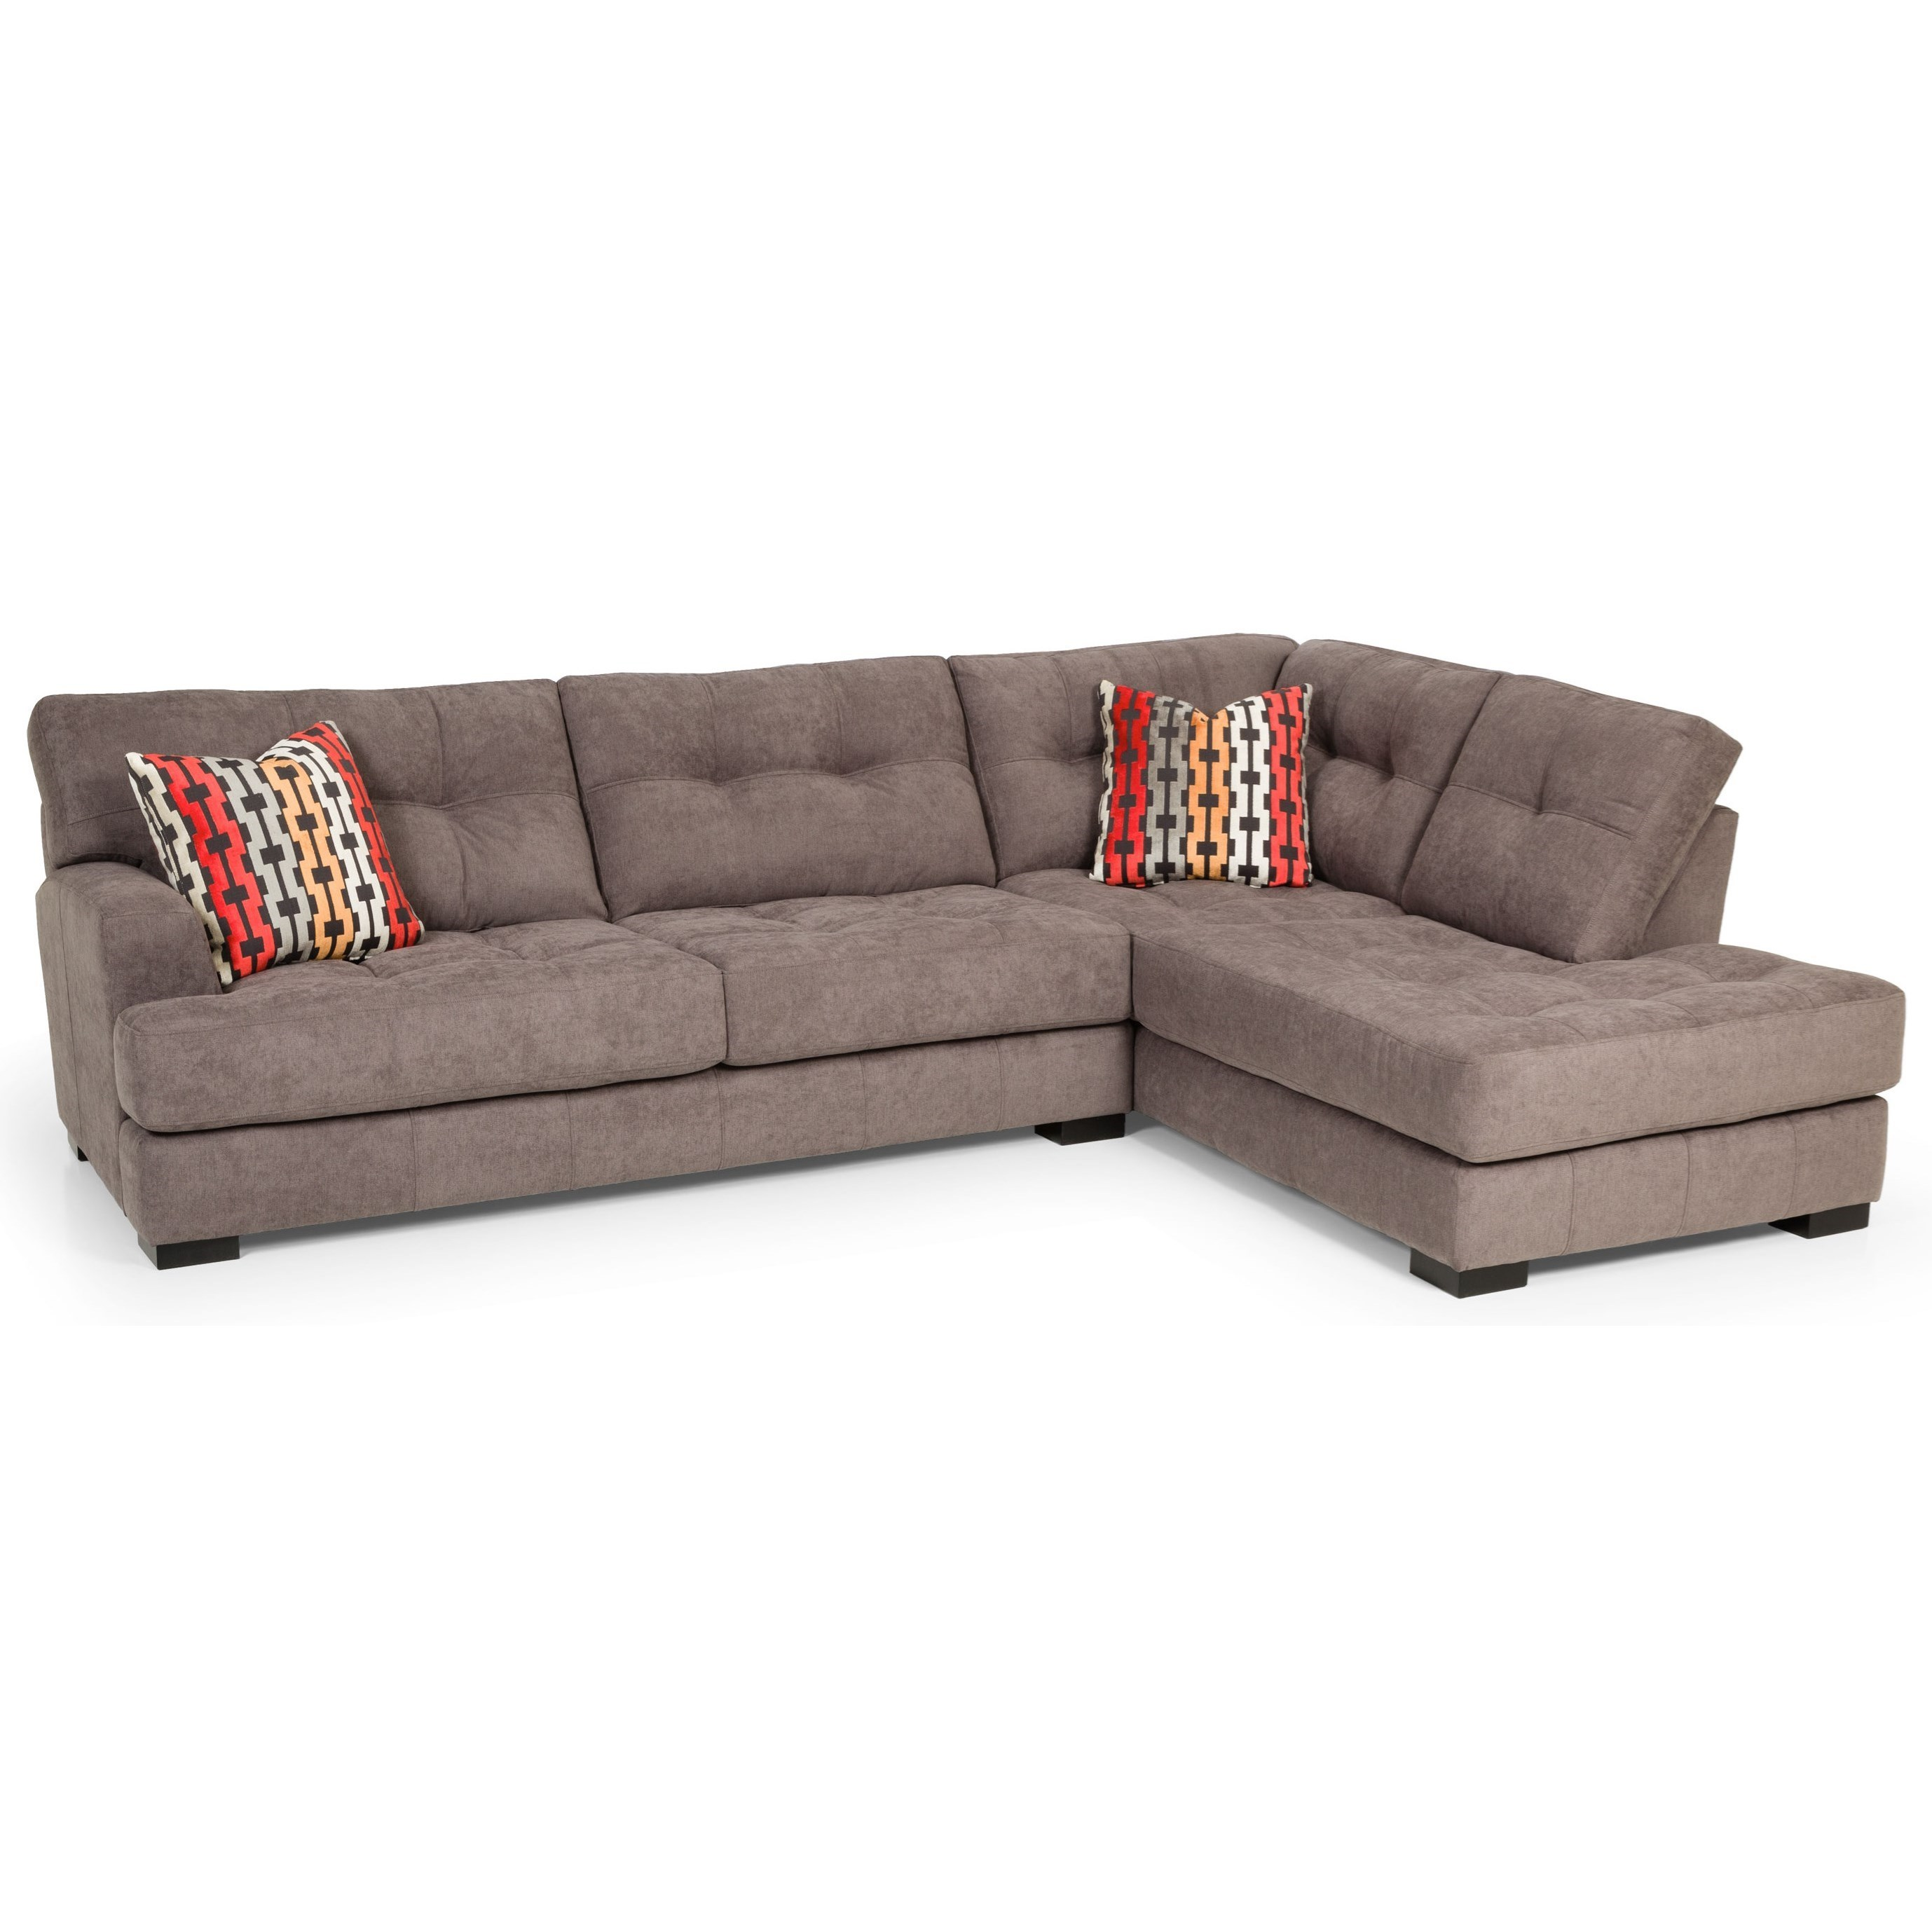 308 2 Pc Sectional Sofa by Stanton at Wilson's Furniture